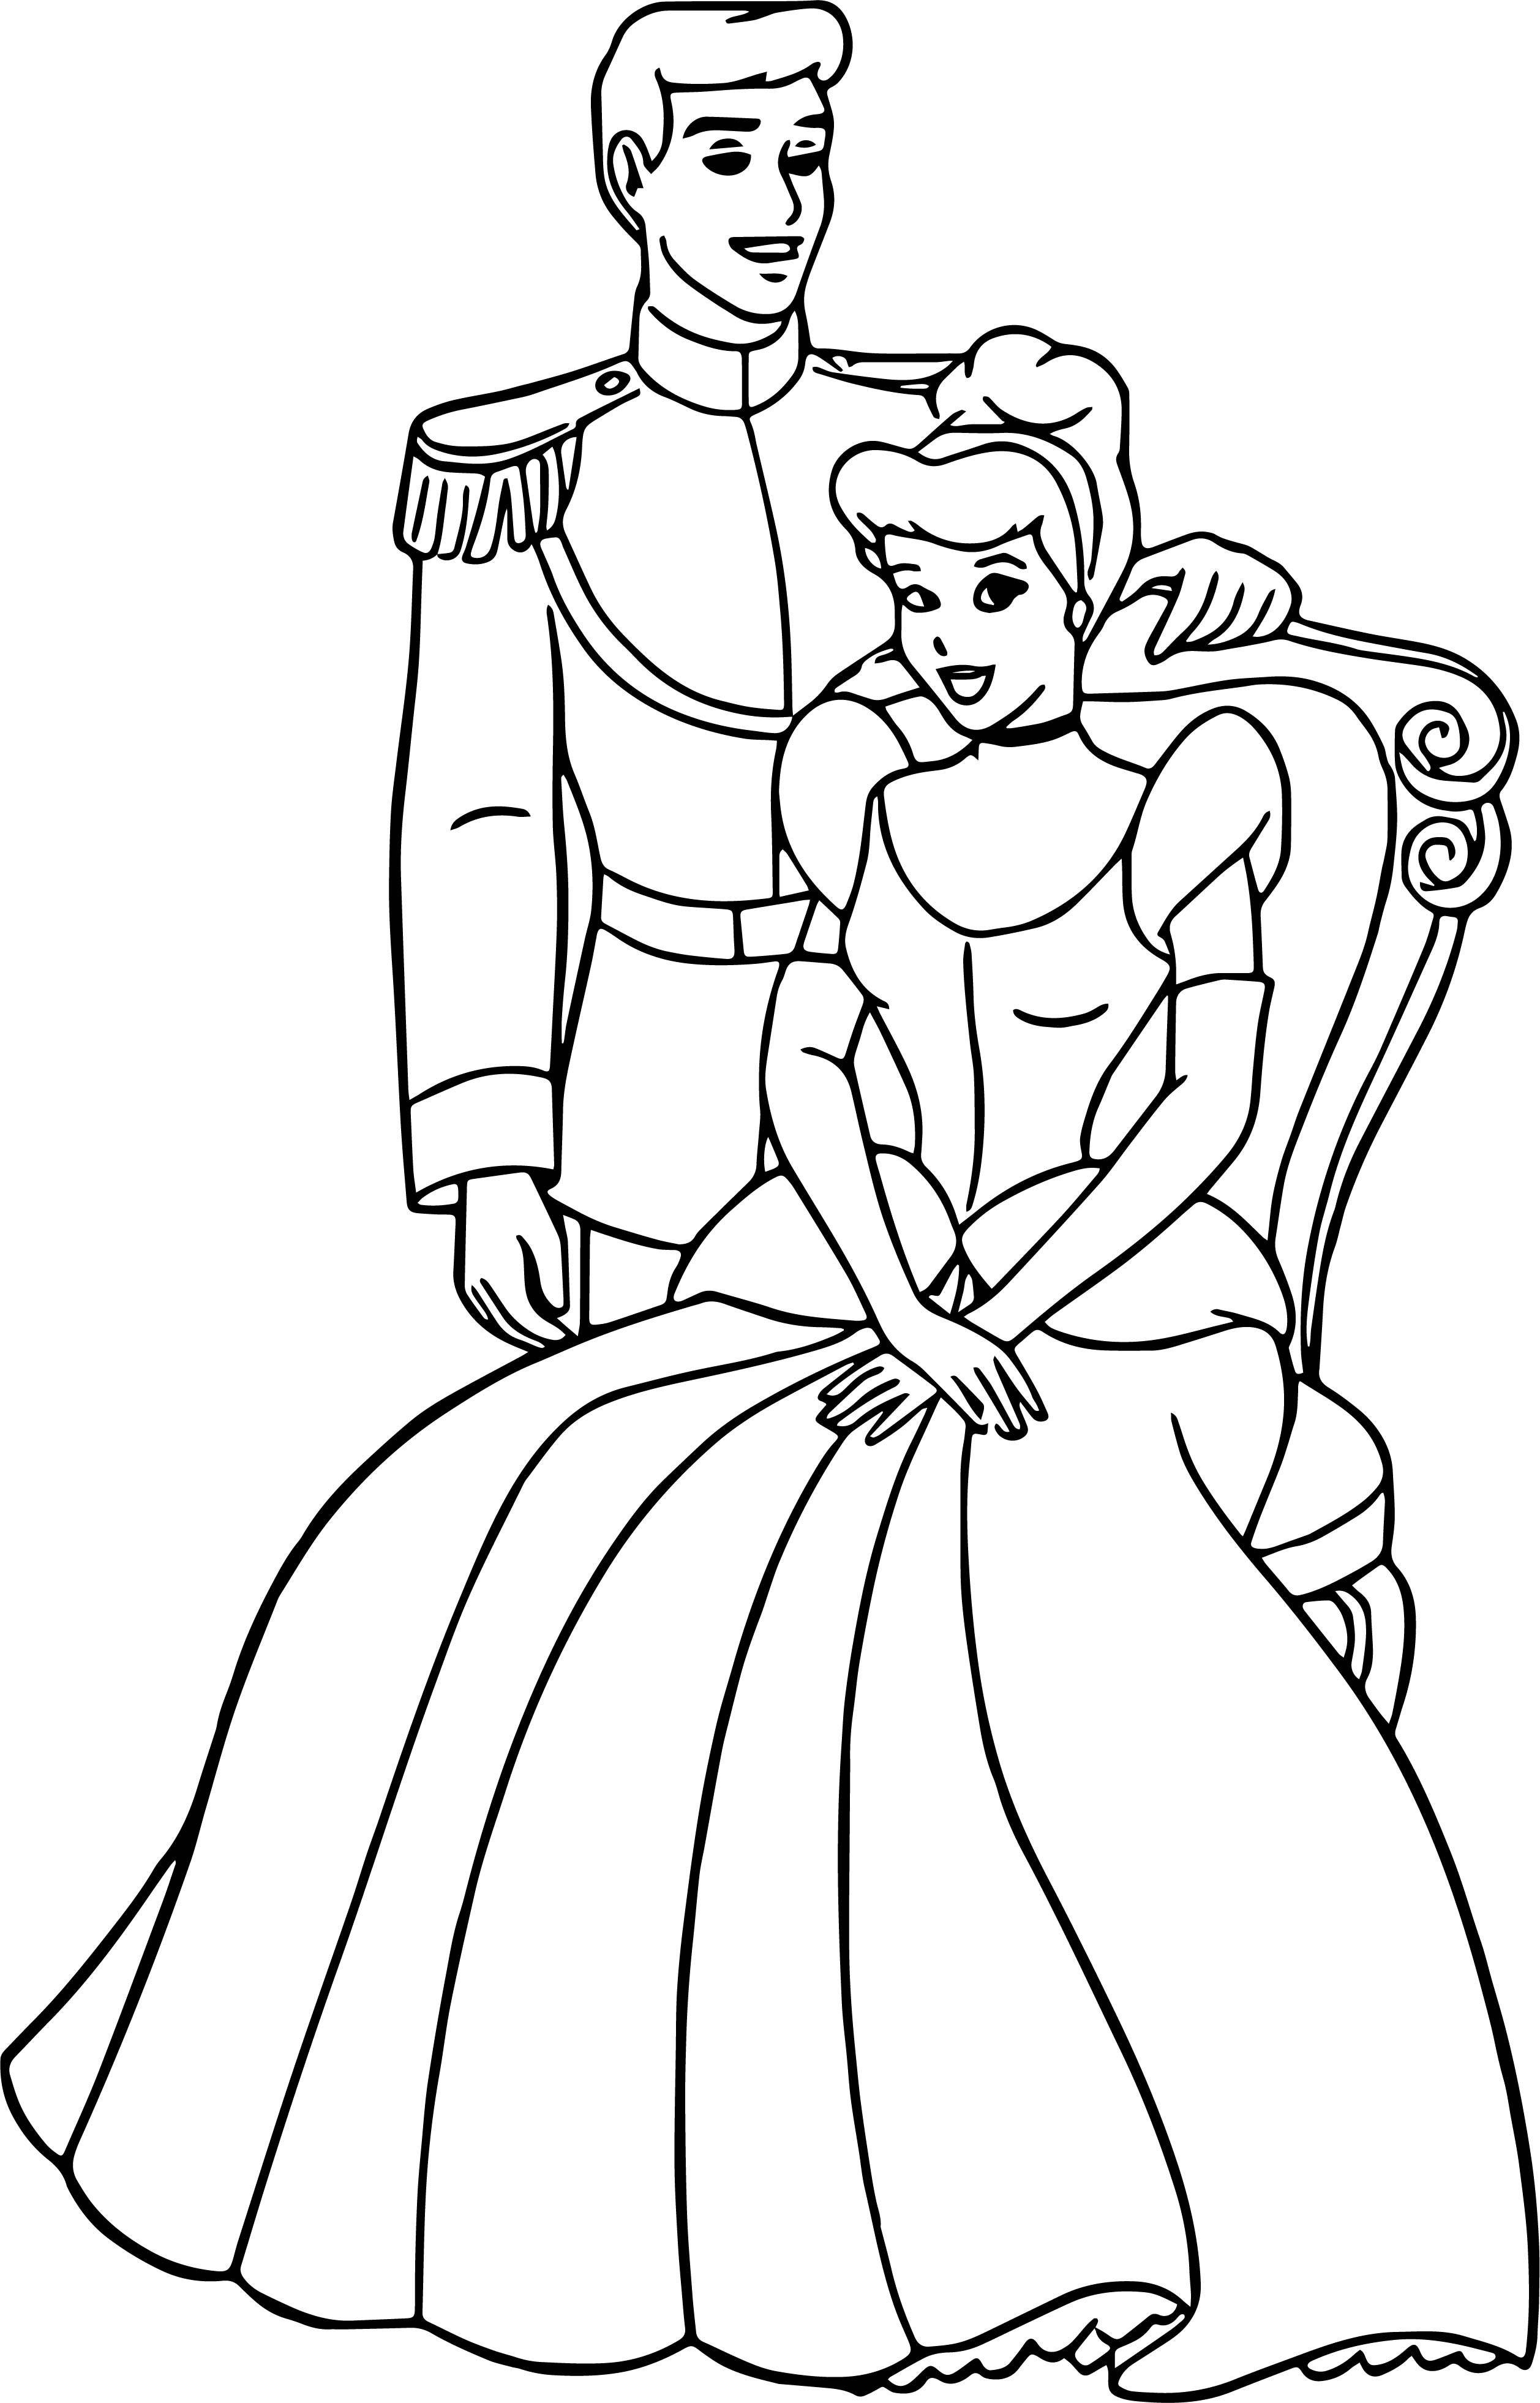 Cinderella And Prince Charming Coloring Pages 25 | Wecoloringpage.com